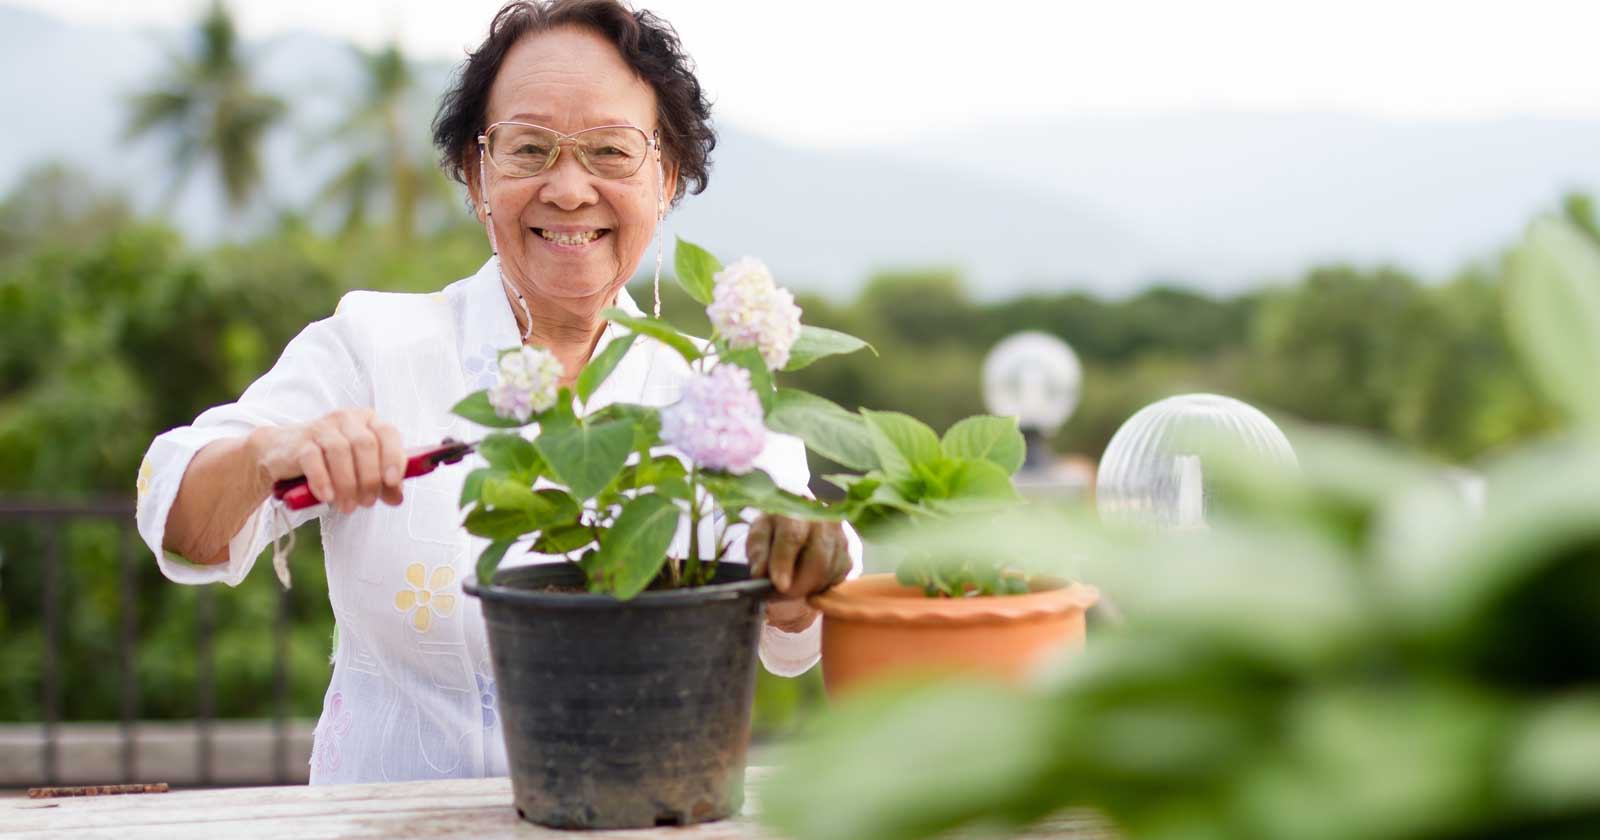 lifestyle-changes-reduce-alzheimers-risk Article-Image-1600x840